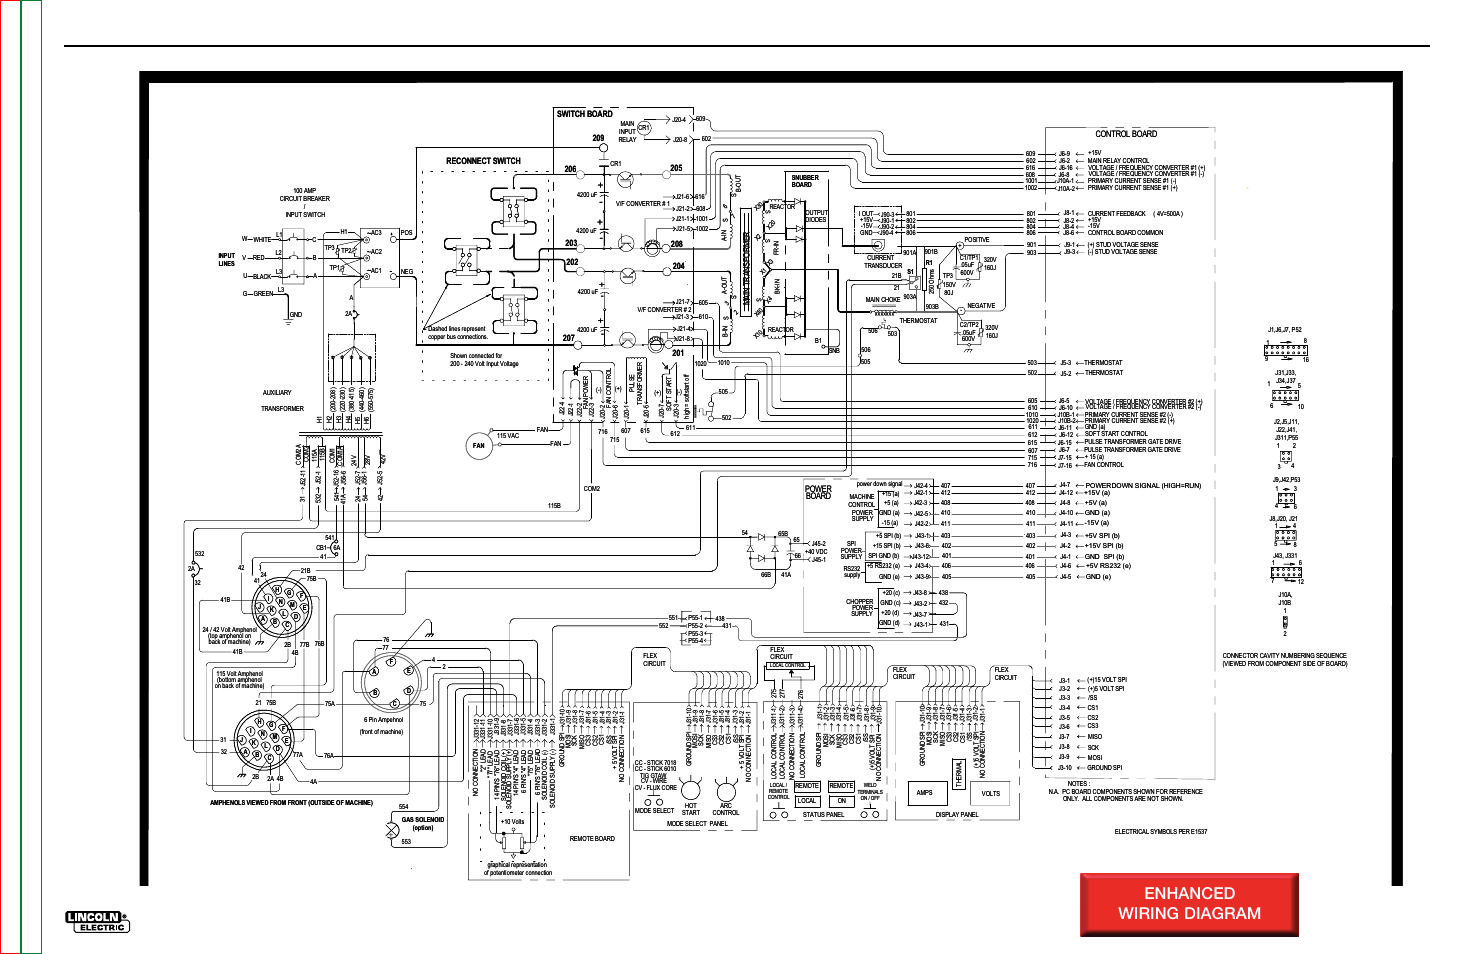 lincoln electric invertec v350 pro svm152 a page135 electrical diagrams, enhanced wiring diagram, schematic complete 1998 Lincoln Navigator Wiring-Diagram at gsmx.co